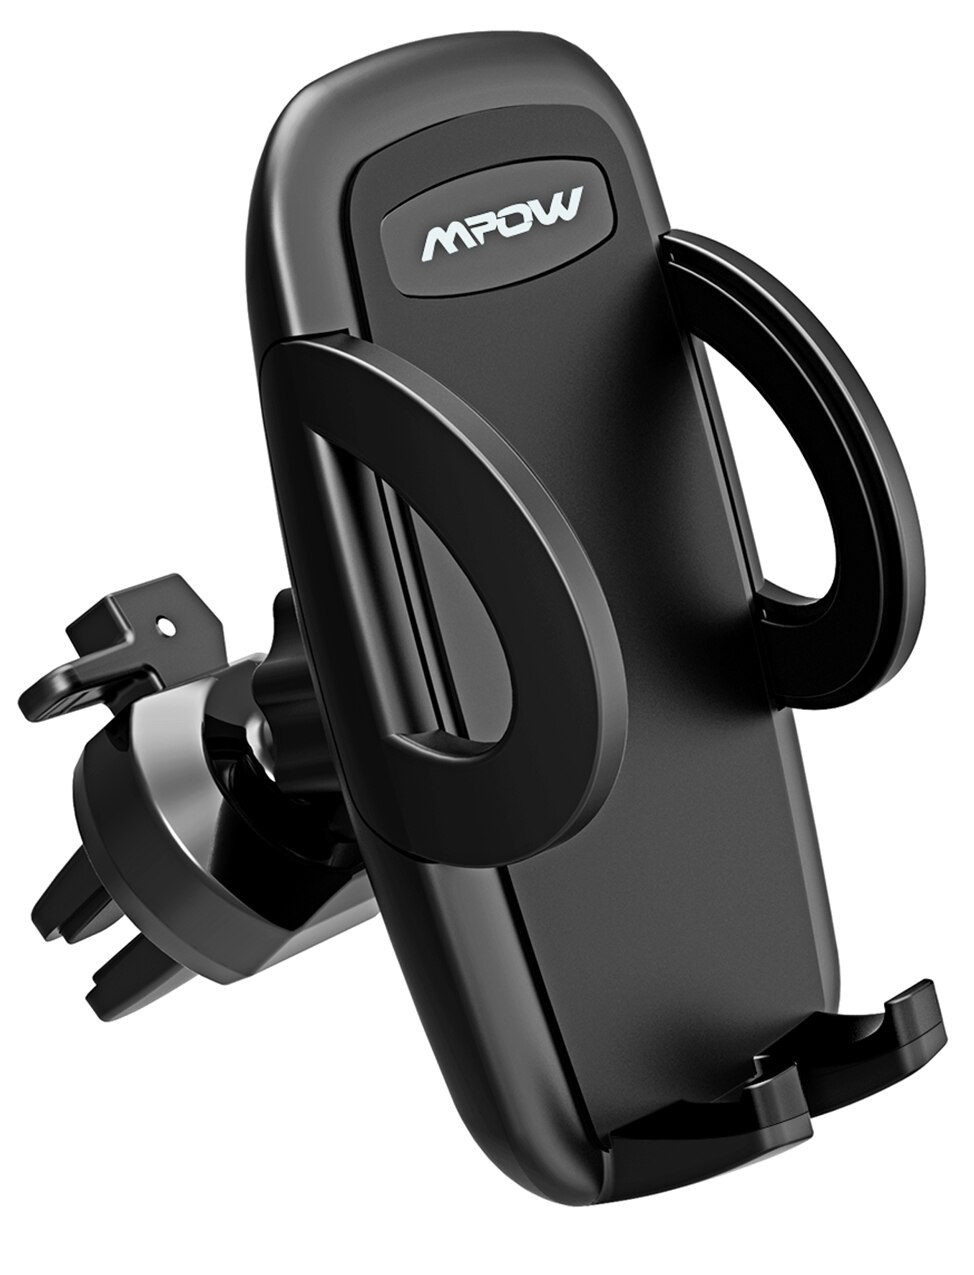 Hdc236c3e76fb448aa97641b4d7ad8245J - Mpow Air Vent Car Mount Holder Universal Cell Phone Cradle 3-level Adjustable Clamp Mobile Phone Stand Cradle For iPhone X/8/7/6